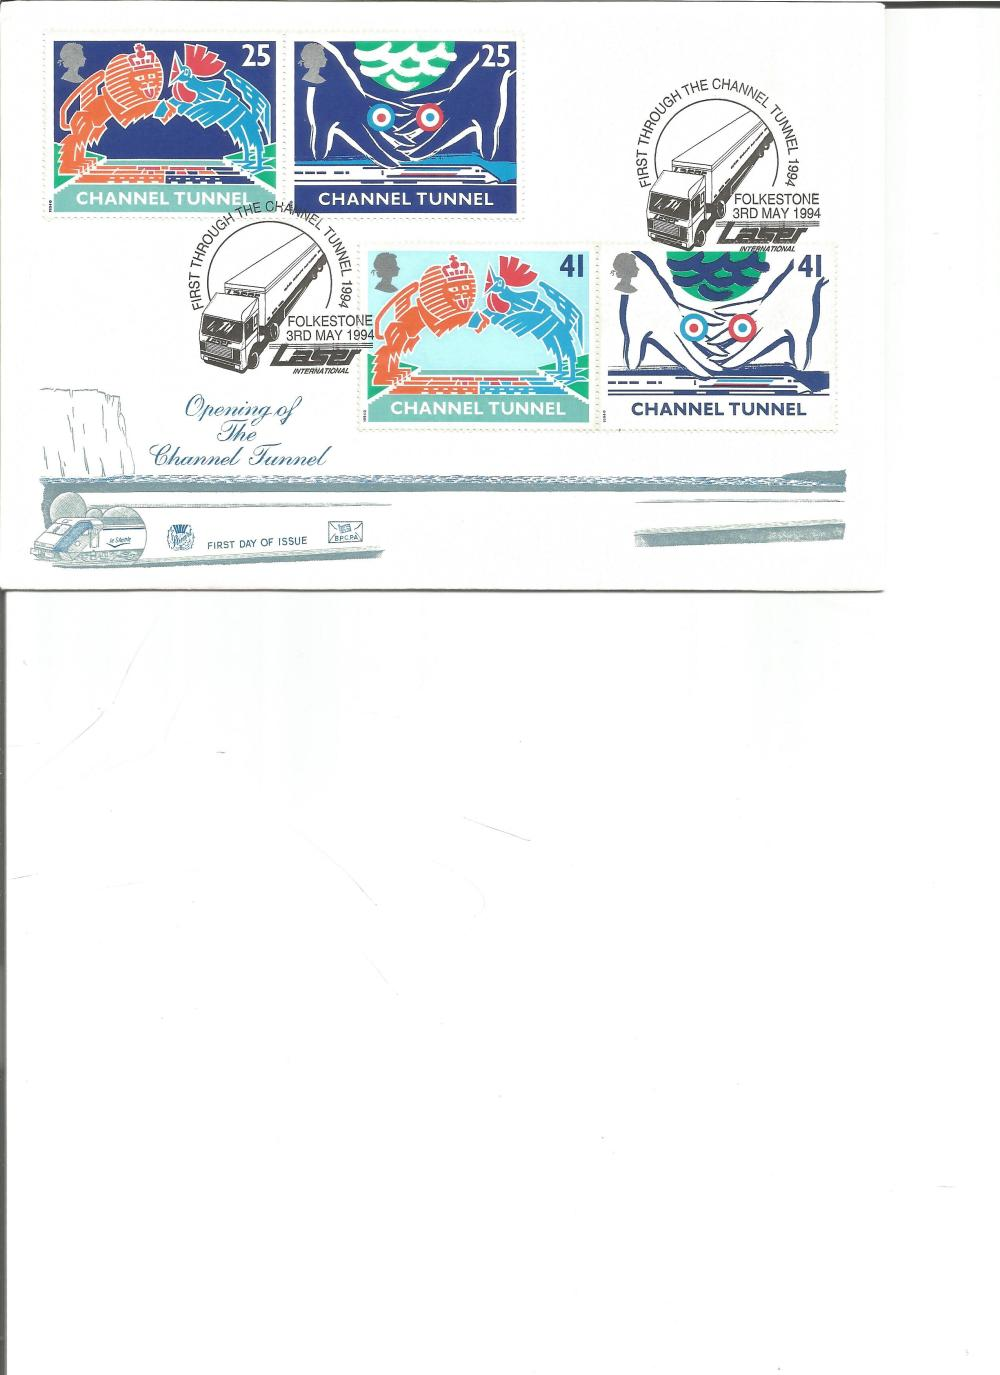 FDC Opening of the Channel Tunnel c/w set of four commemorative stamps double PM First Through The